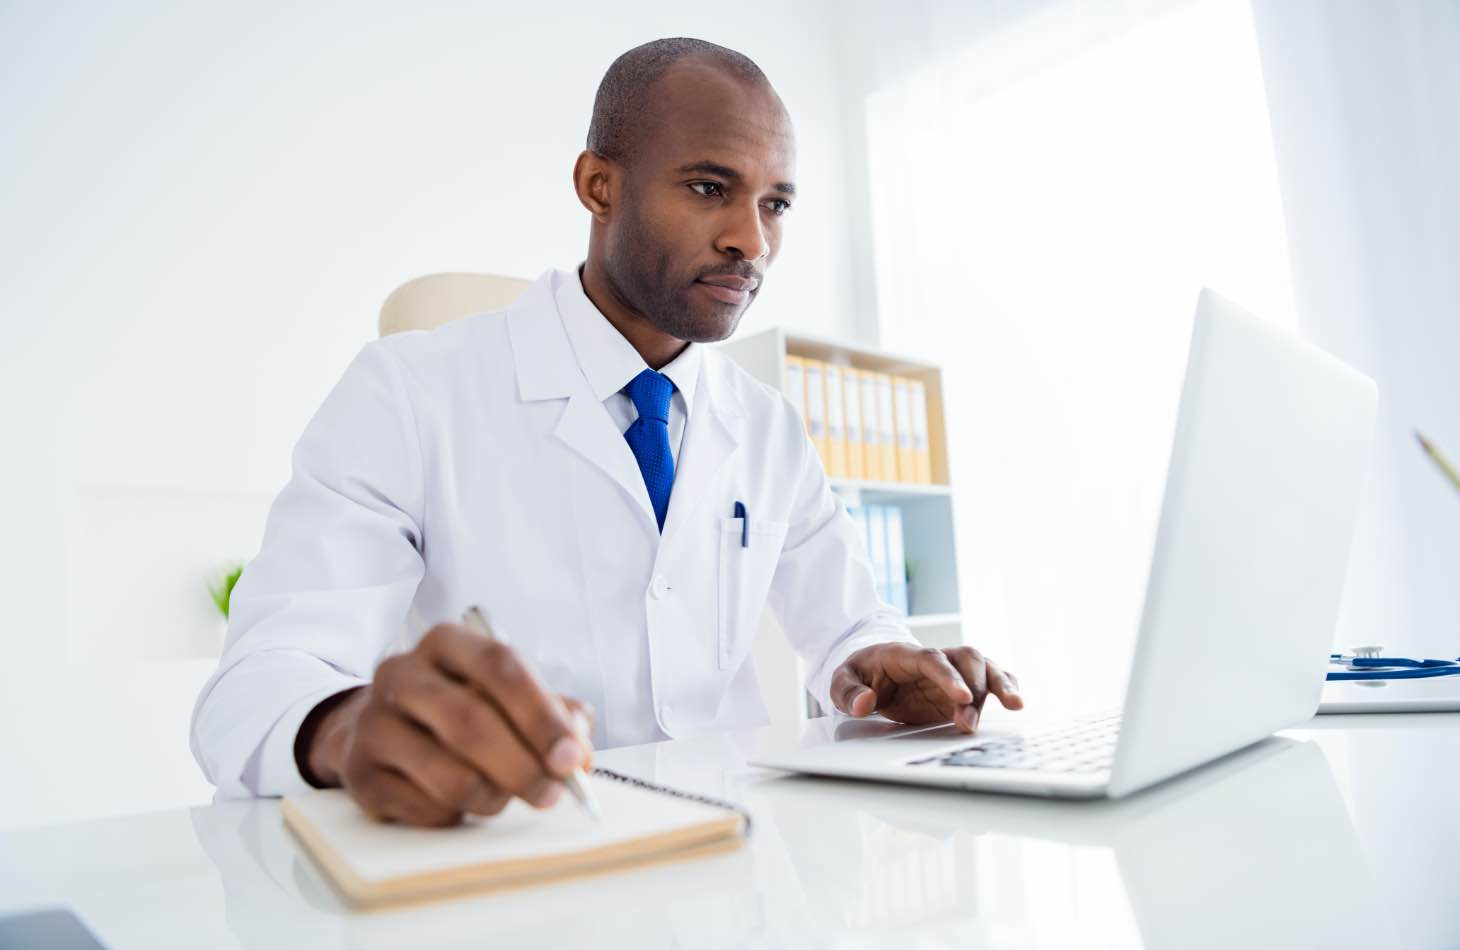 A Doctor On His Laptop Looking Up Medication Assisted Treatment Options For A Client